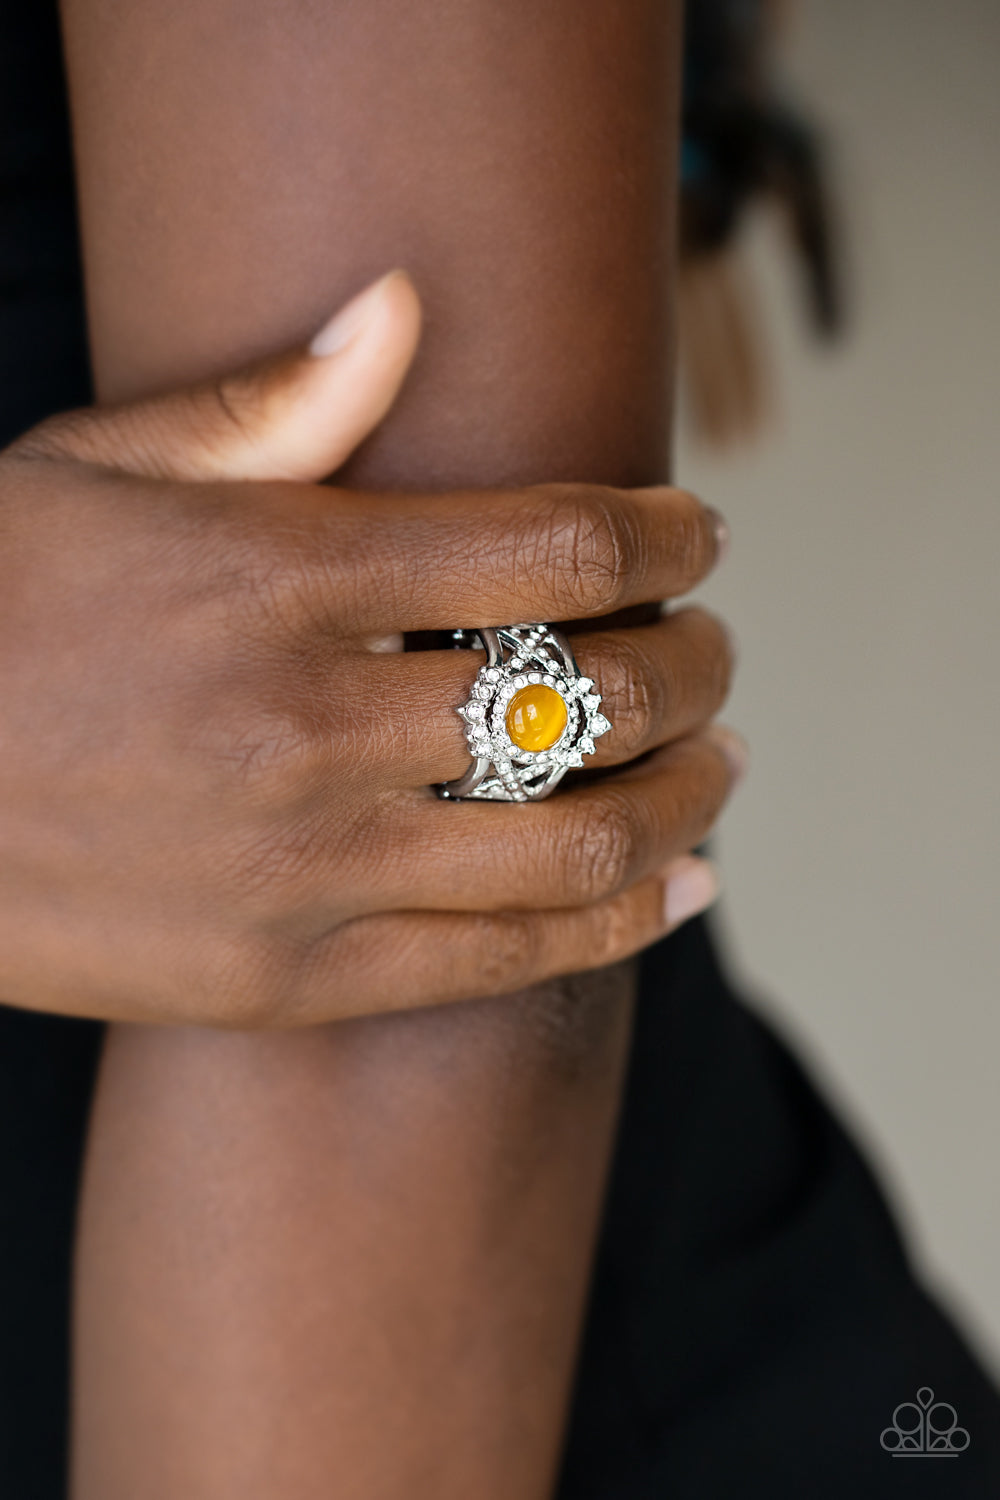 Paparazzi Jewelry & Accessories - Decadently Dreamy - Yellow Ring. Bling By Titia Boutique